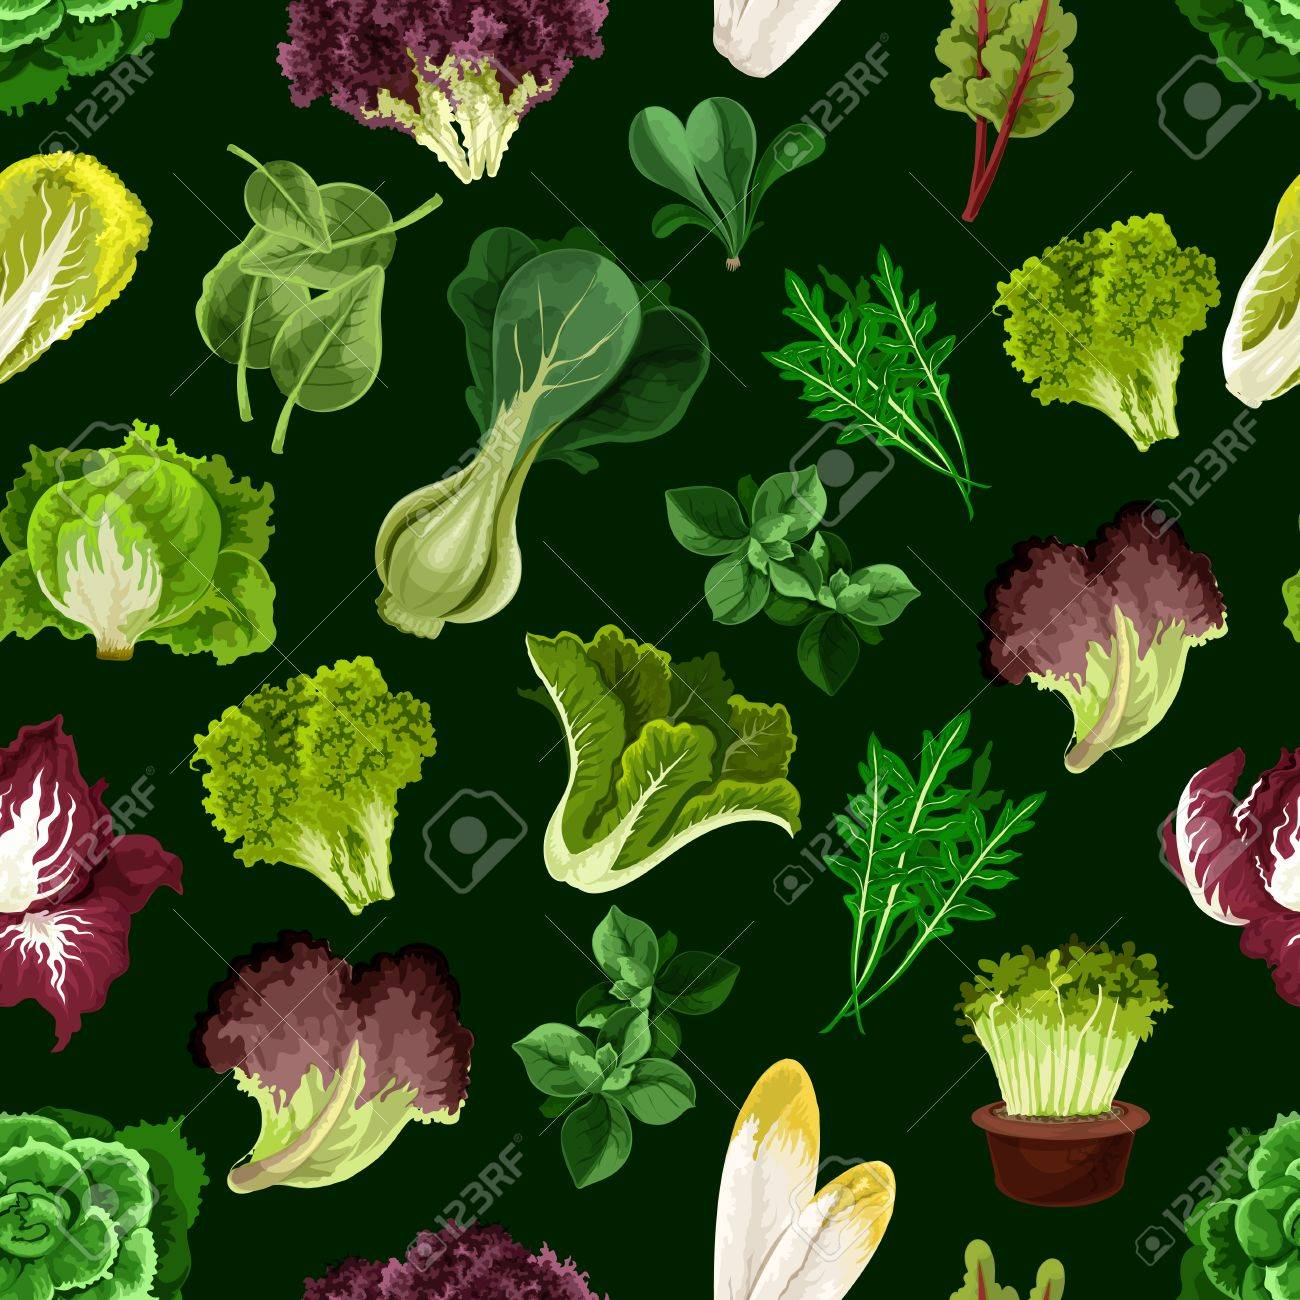 Leaf Vegetable Salad Greens And Potherb Seamless Pattern With Fresh Lettuce Spinach Cress